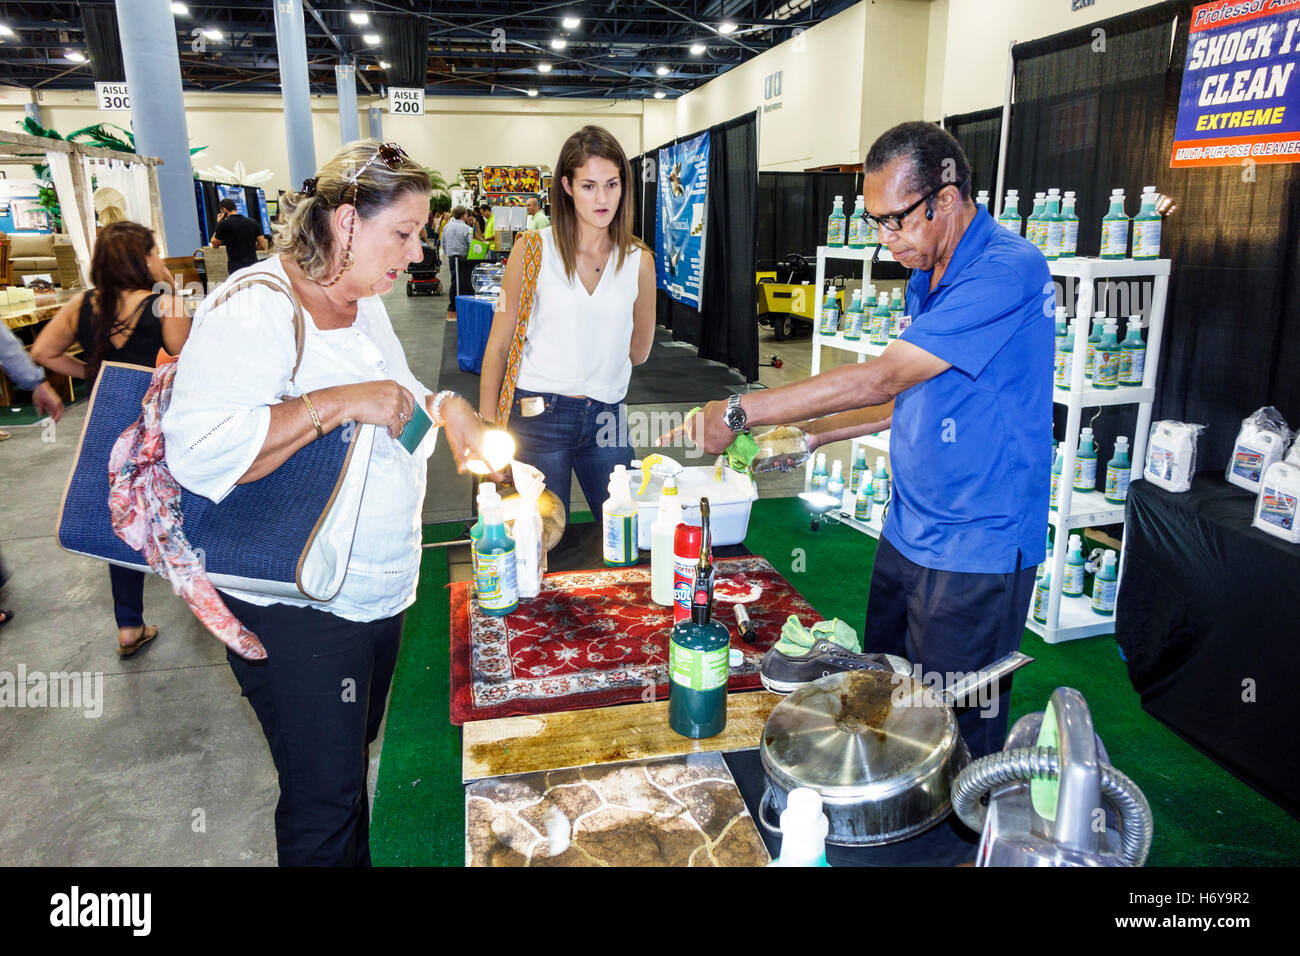 Florida Miami Beach Convention Center Centre Home Design And Remodeling Show  Black Man Salesman Selling Product Demonstration Demonstrating Shock It C